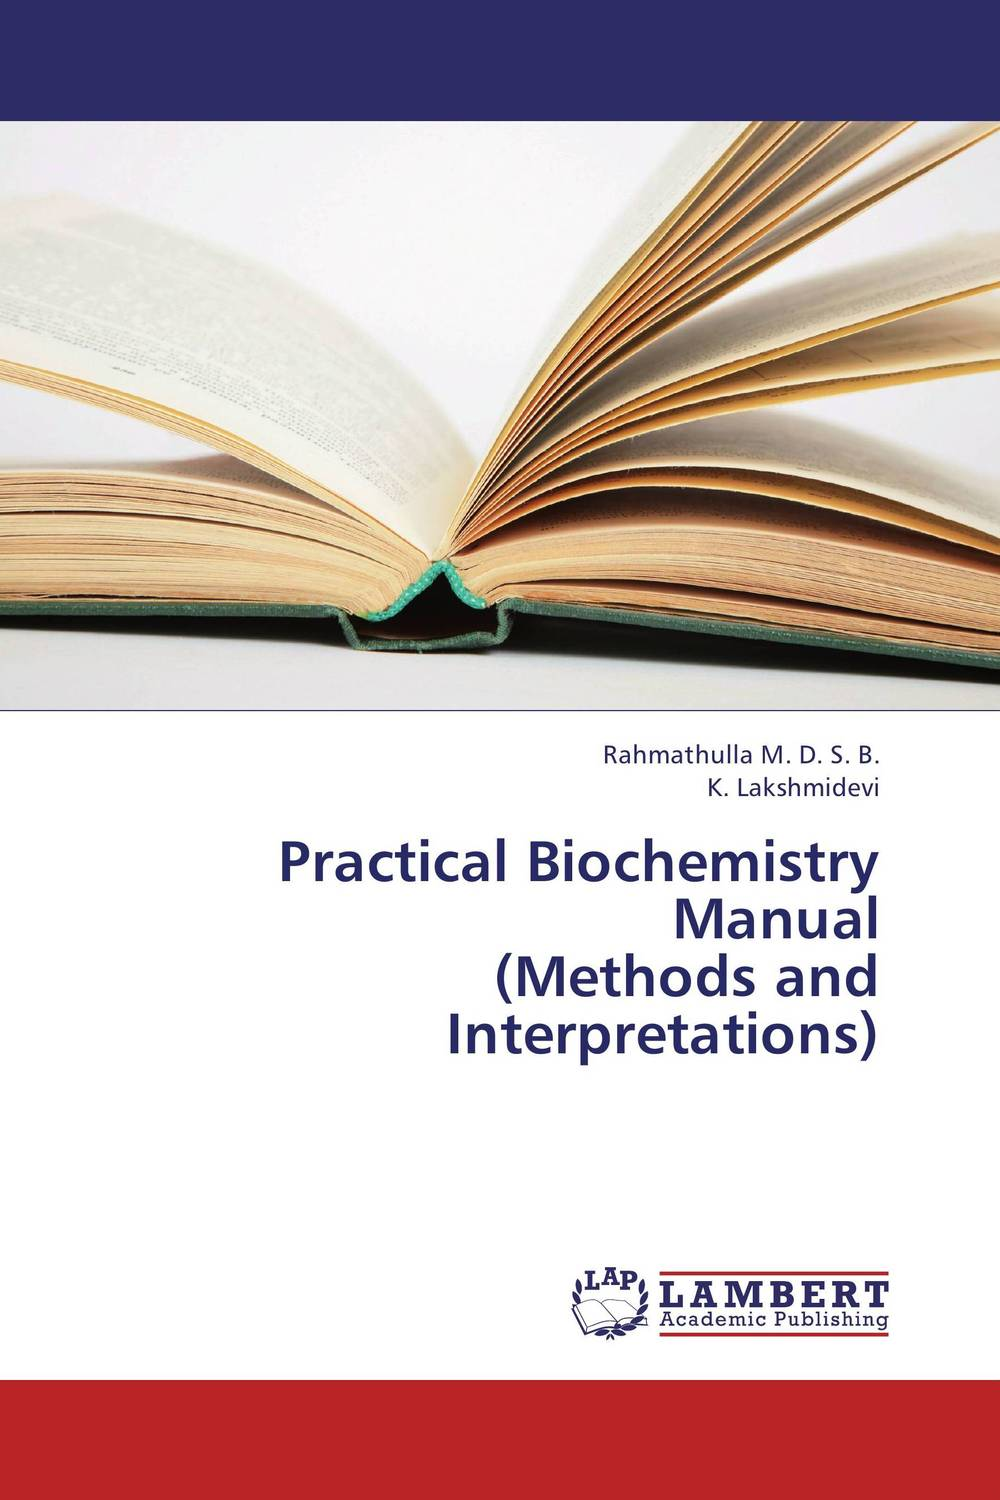 Practical Biochemistry Manual  (Methods and Interpretations) ifo alex amata and job akpodiete agricultural biochemistry and methods